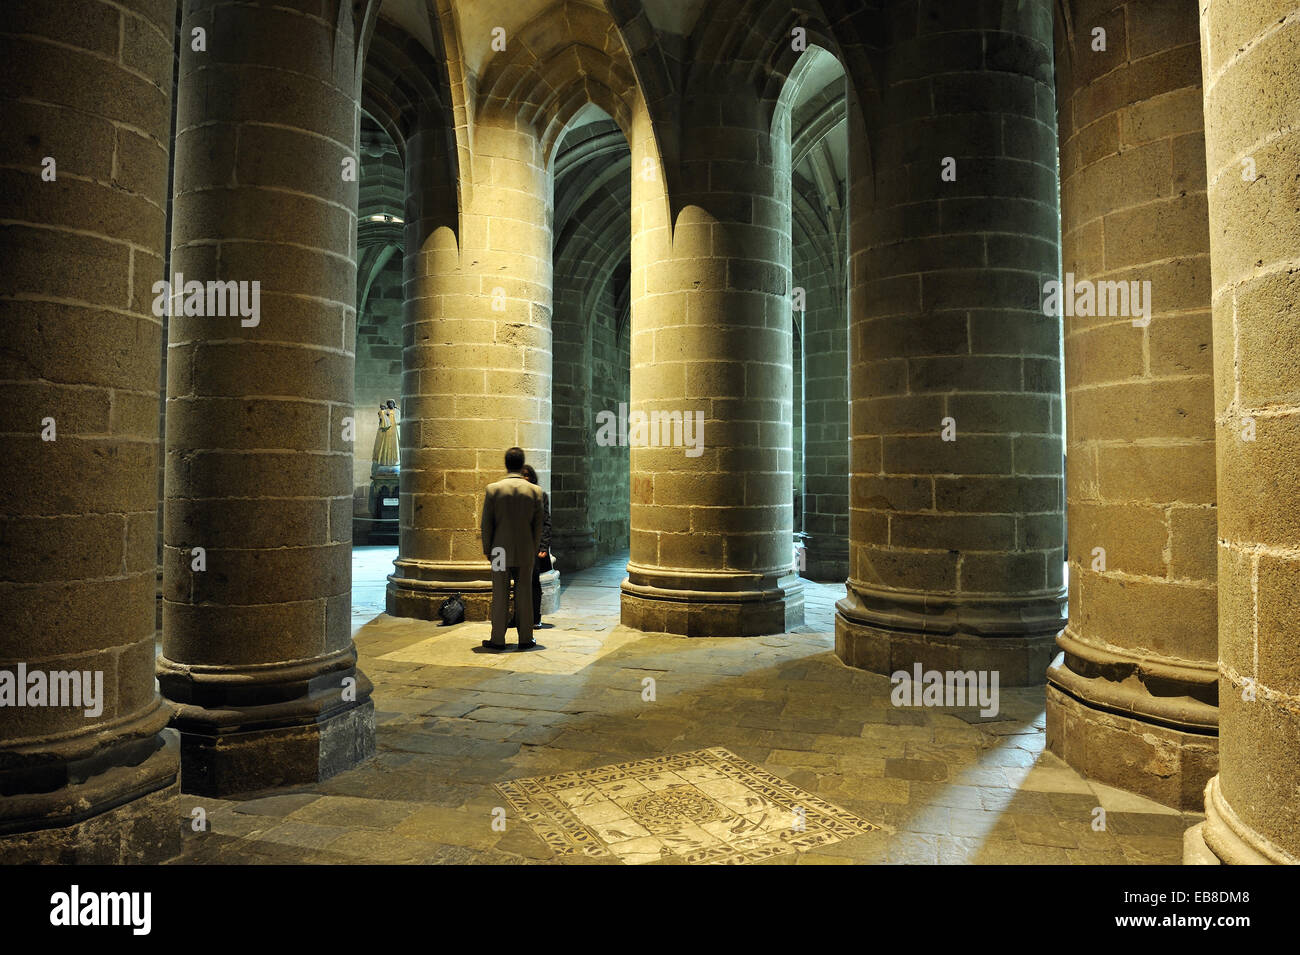 Crypte des piliers massifs, l'abbaye du Mont Saint Michel, Manche, Basse Normandie, France, Europe. Photo Stock